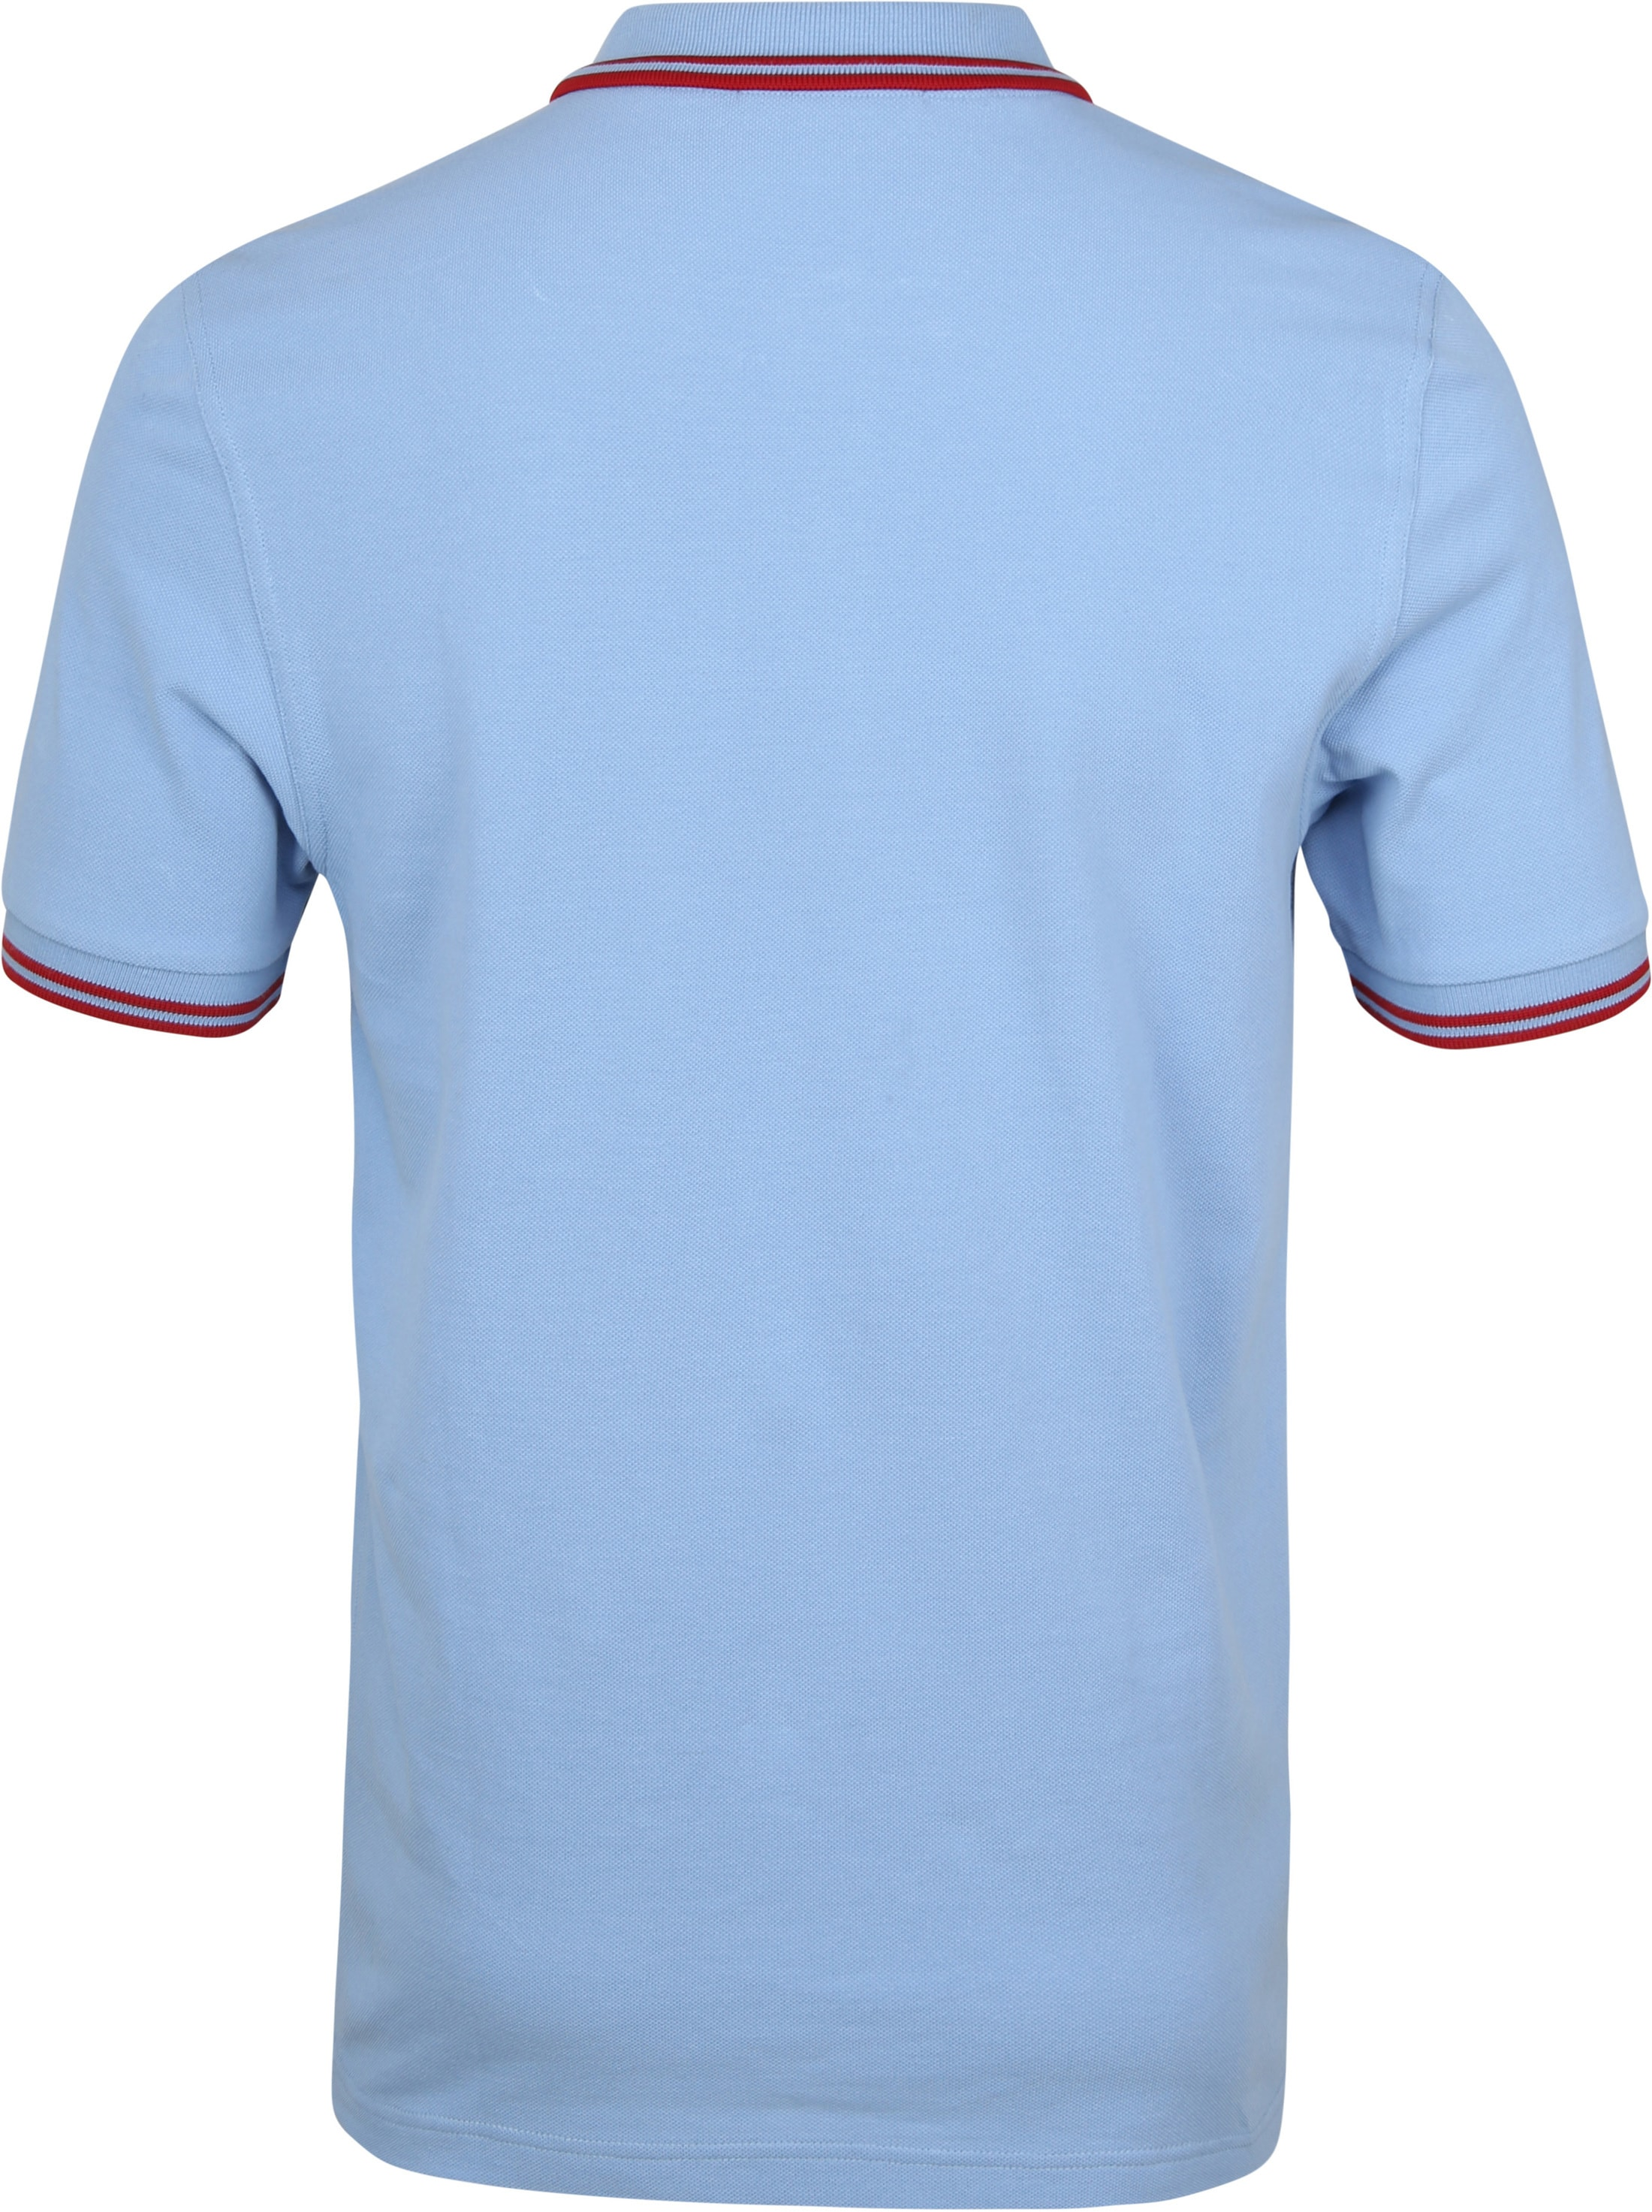 Fred Perry Poloshirt Blue 444 foto 2